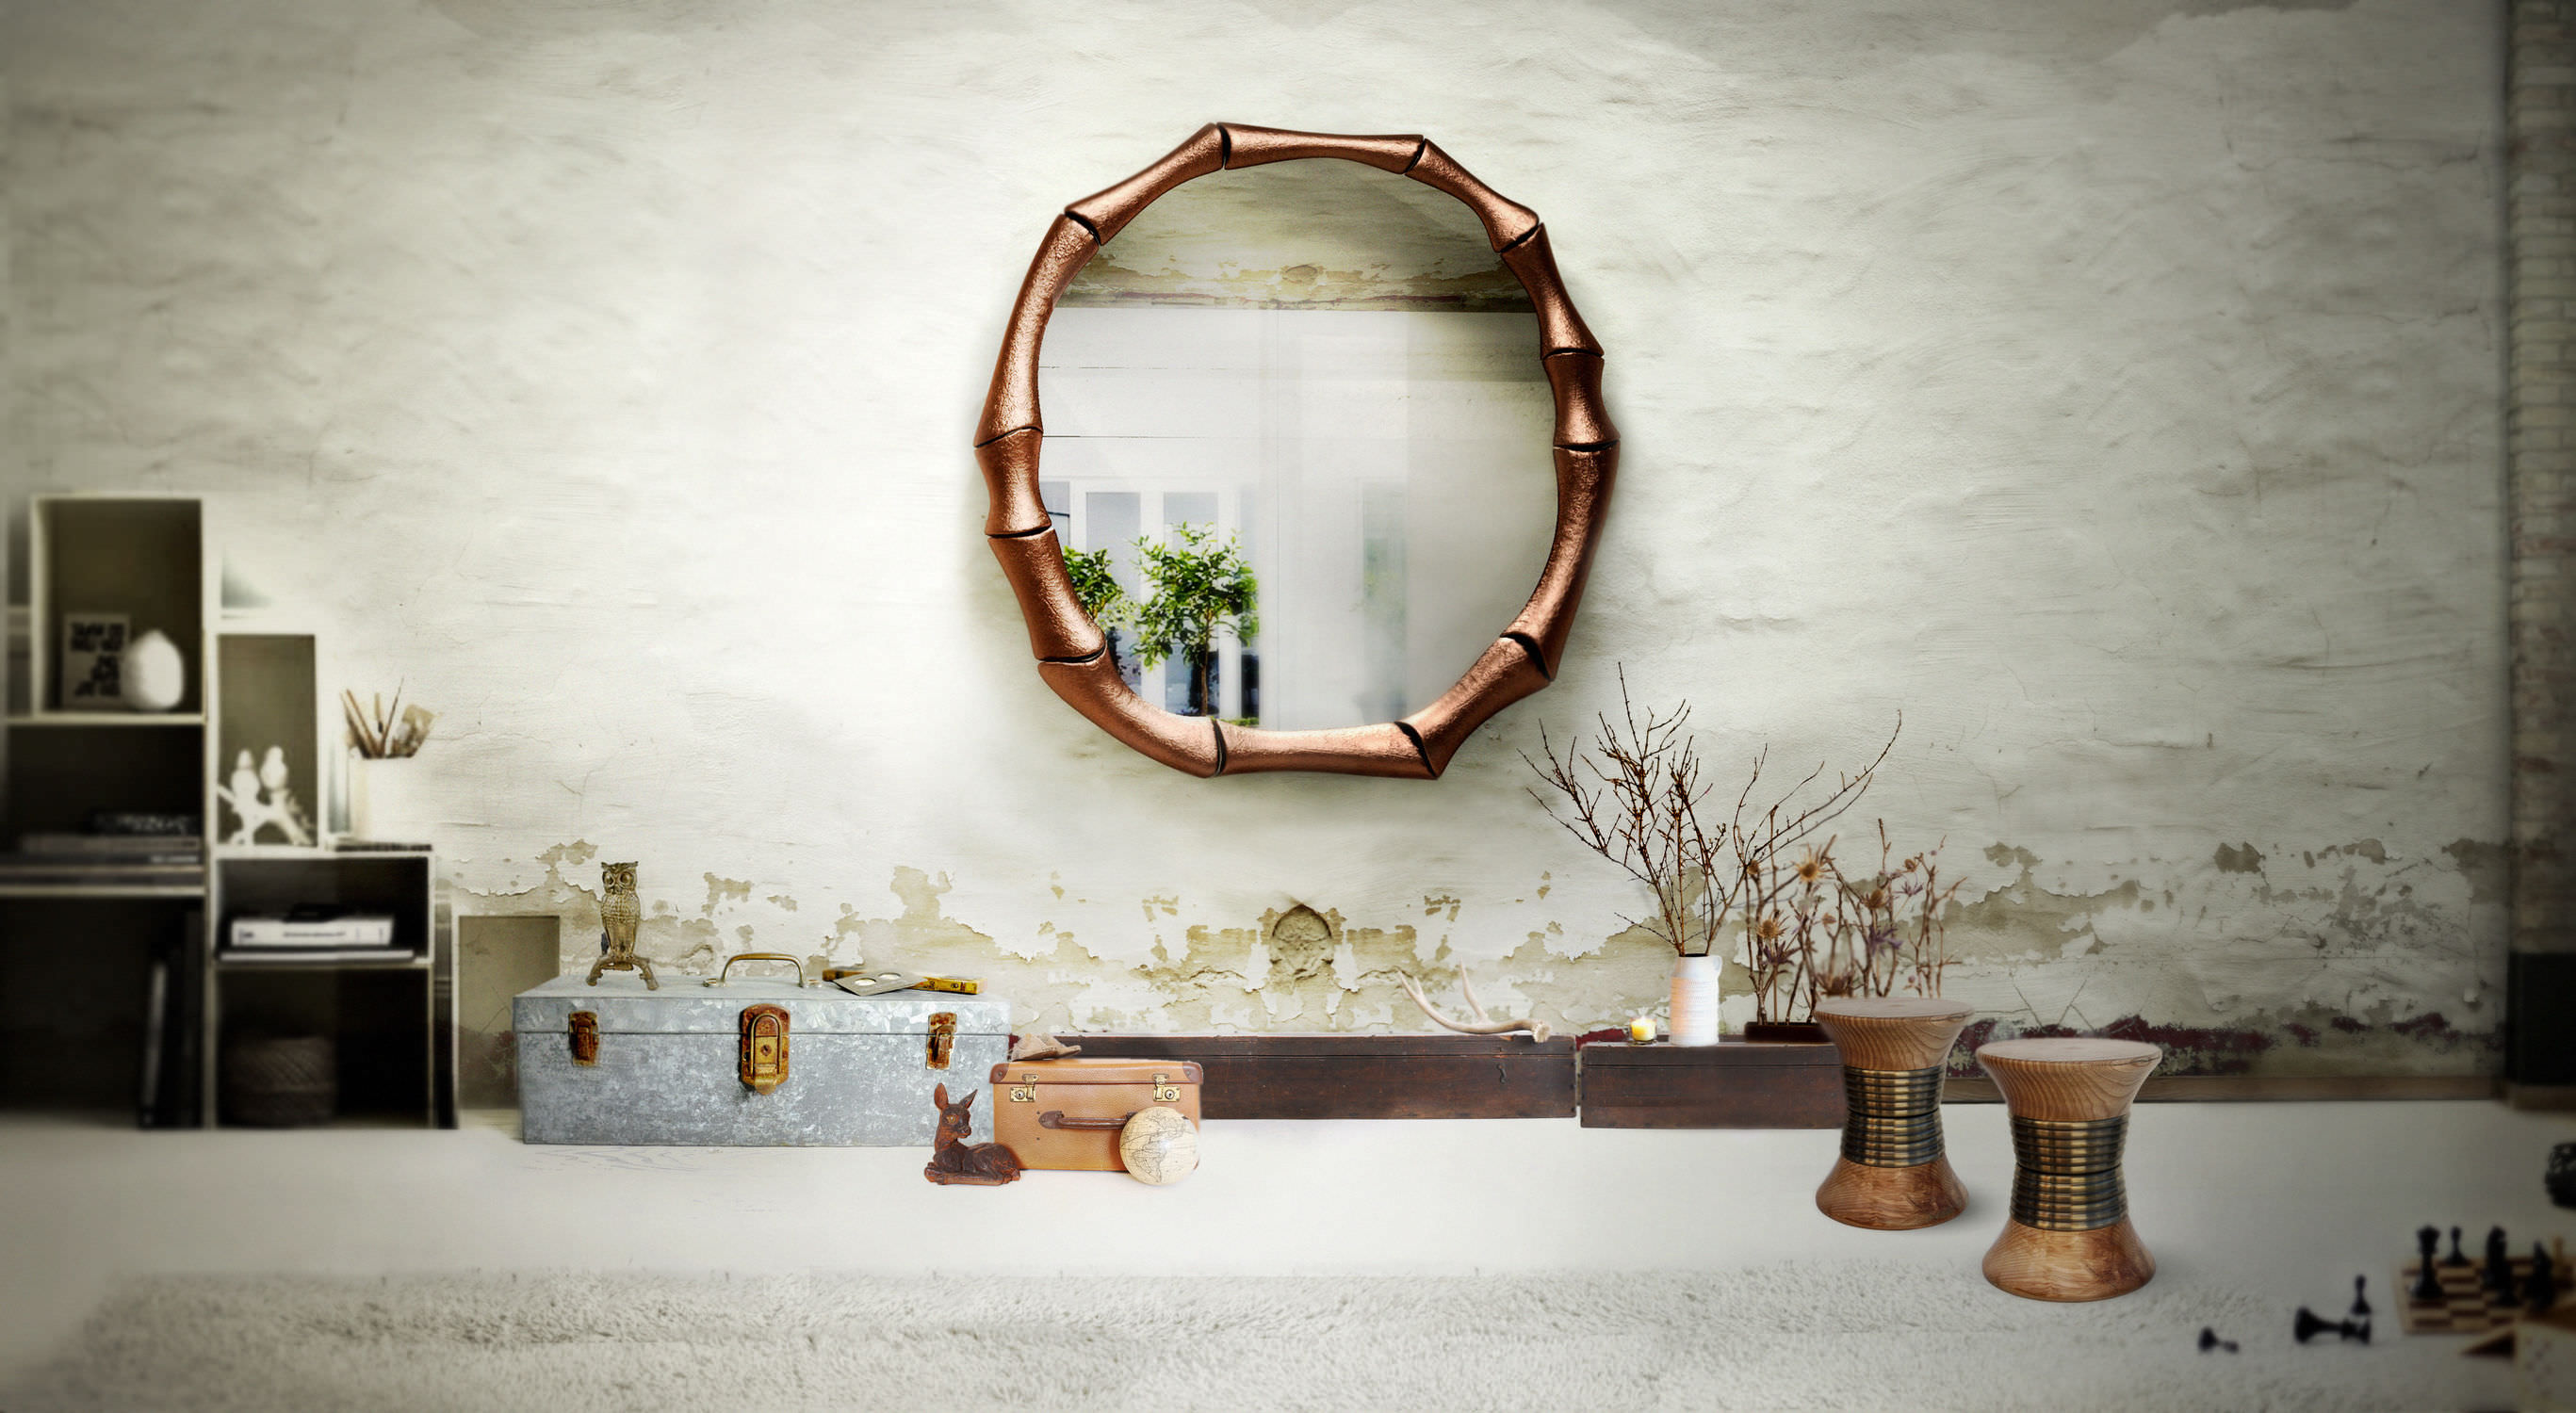 The Most Beautiful Wall Mirror Designs for Your Living Room  wall mirror designs The Most Beautiful Wall Mirror Designs for Your Living Room The Most Beautiful Wall Mirror Designs for Your Living Room7